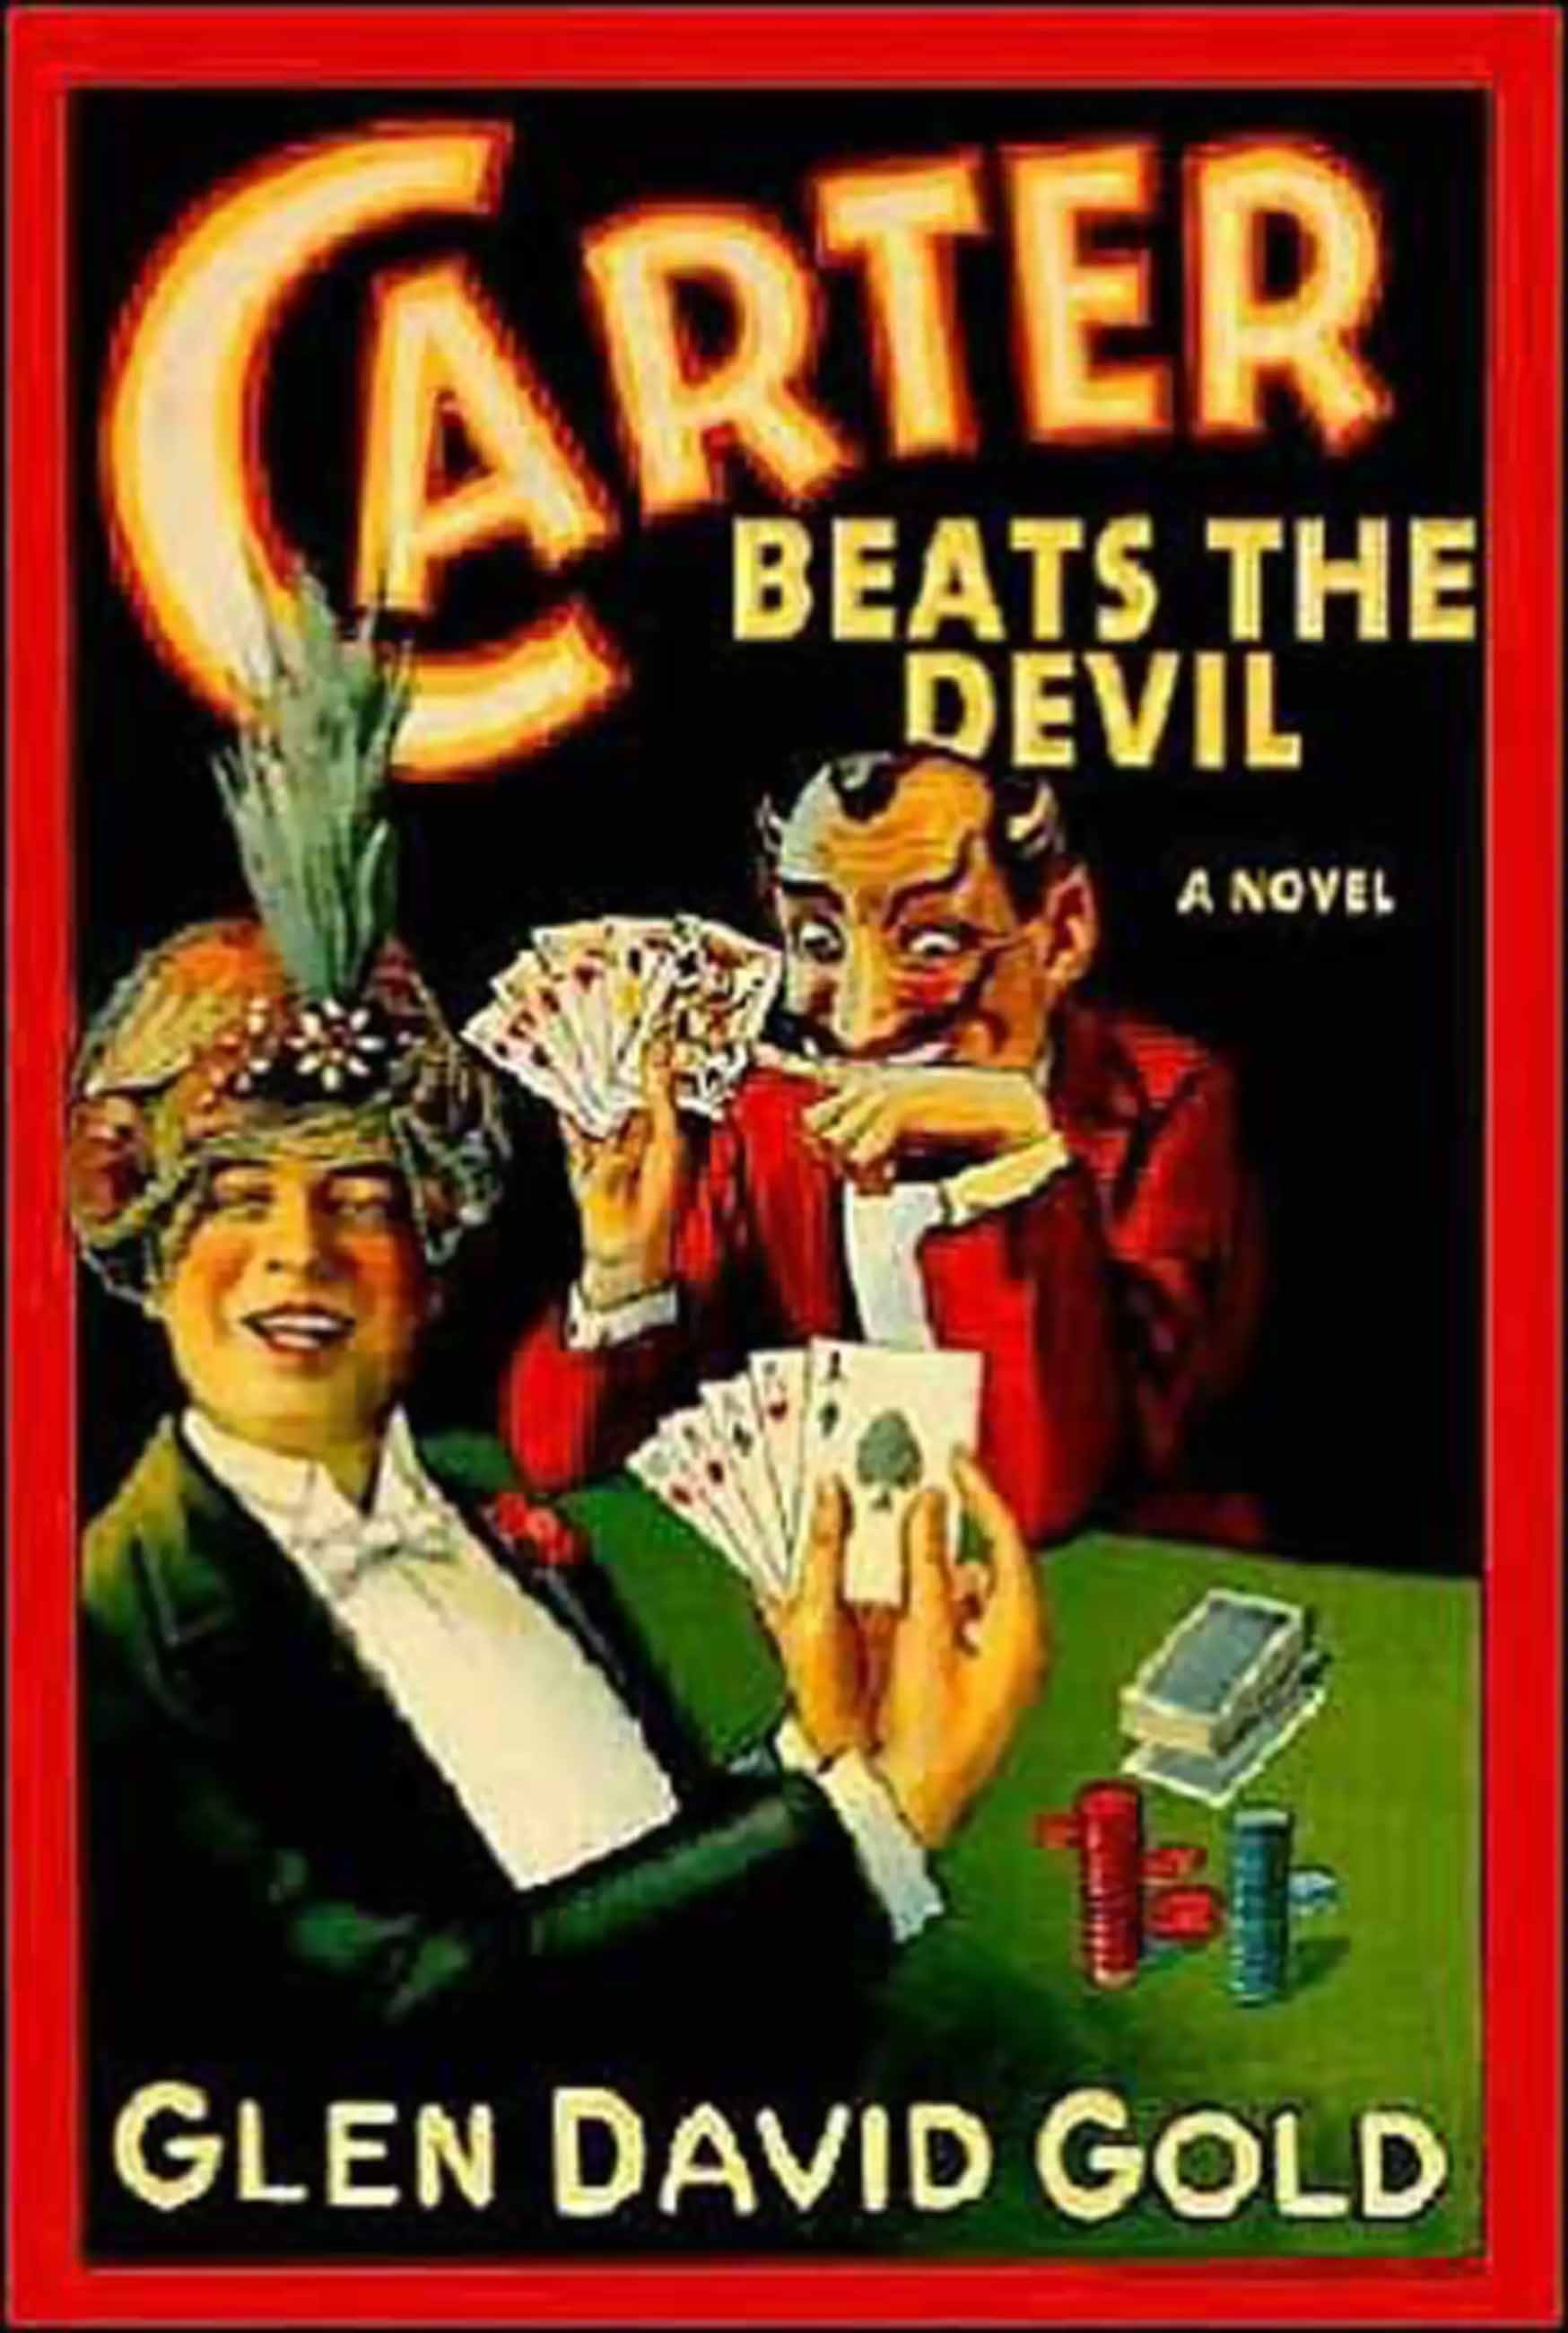 Carter Beats the Devil